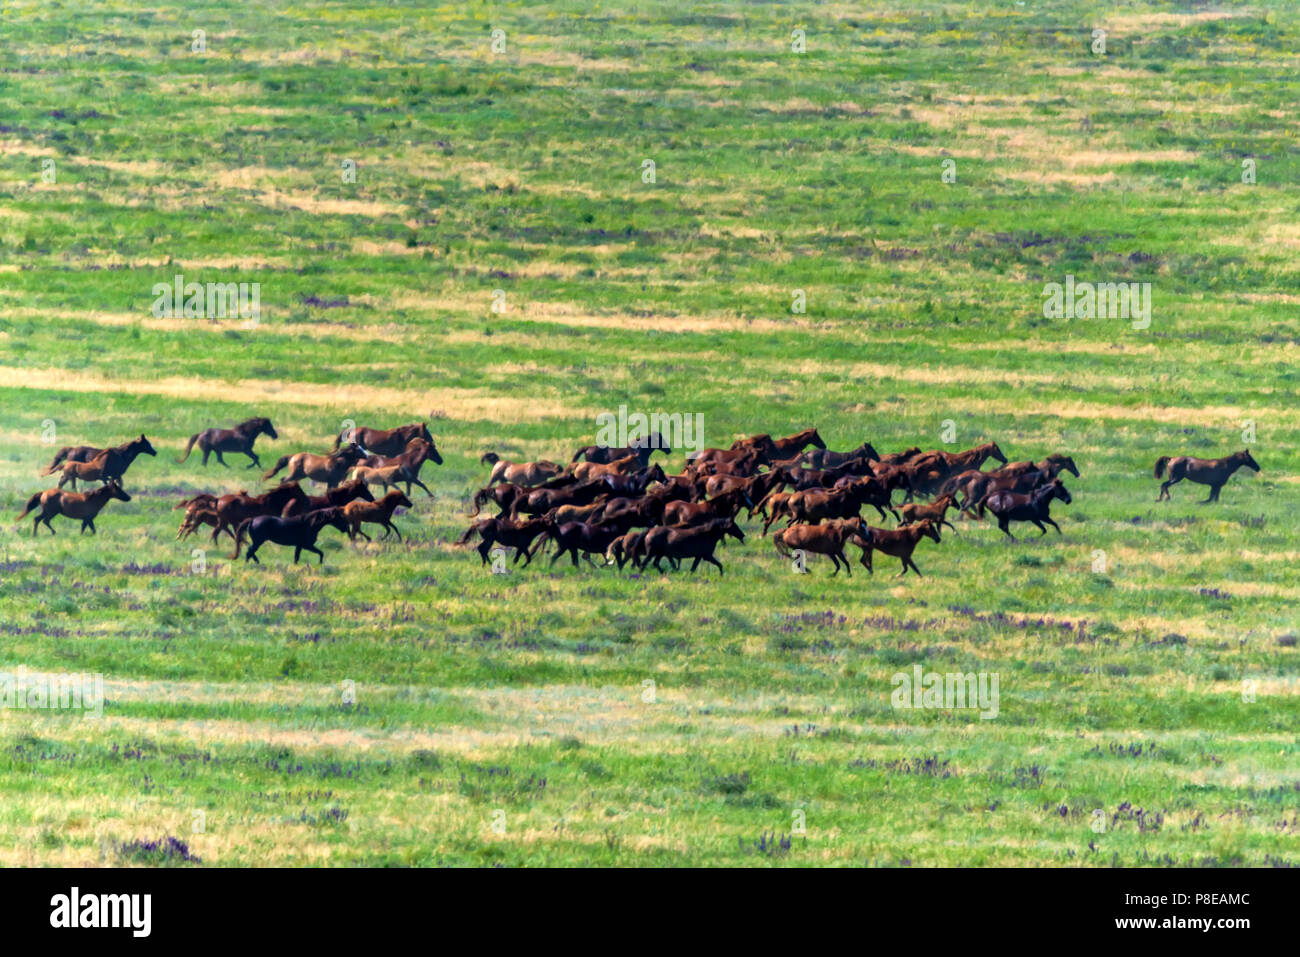 Wild horses gallopping on summer meadow - Stock Image